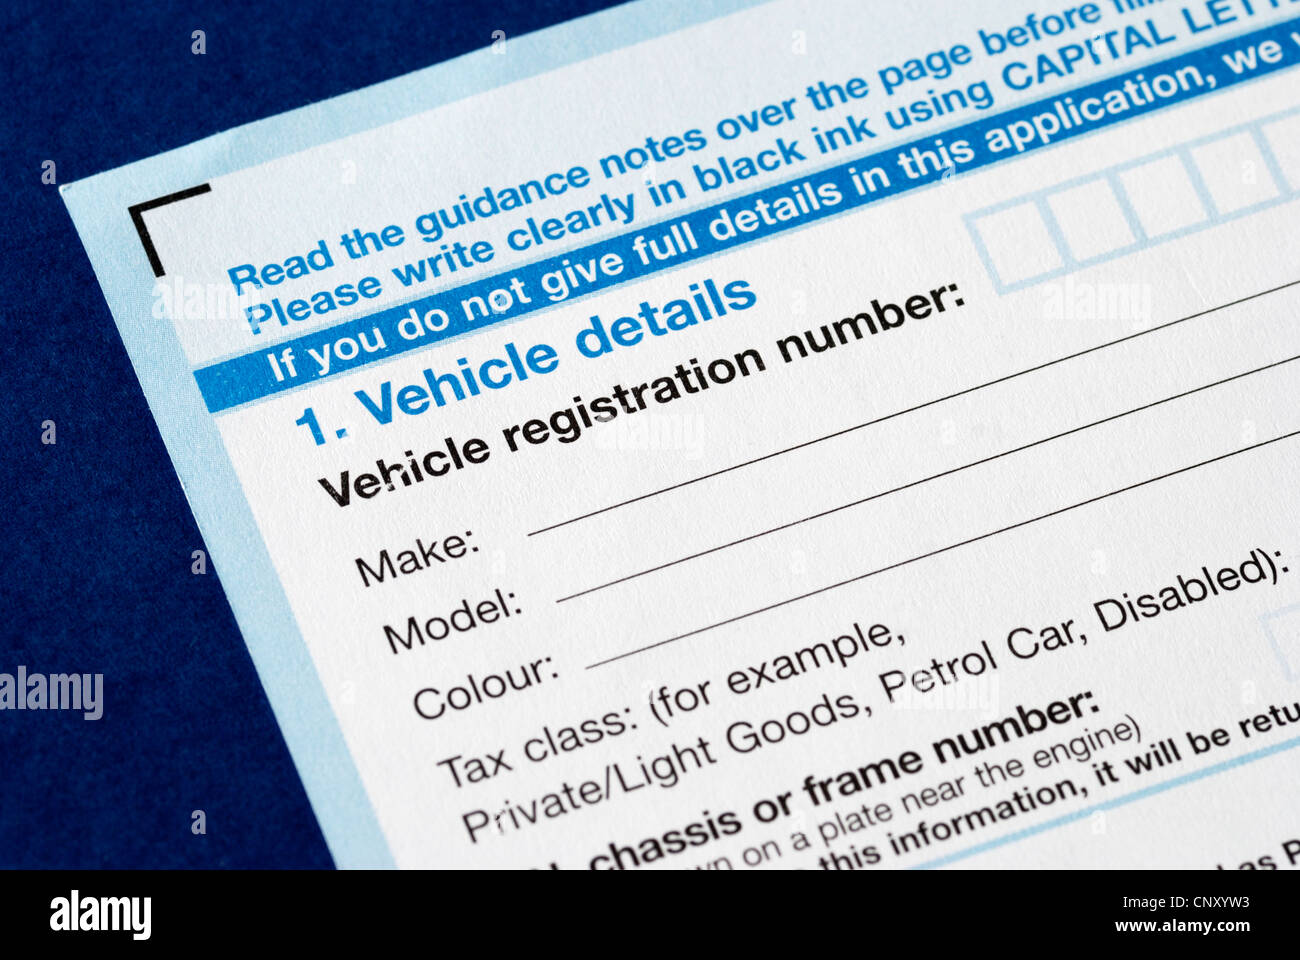 UK Vehicle registration form Stock Photo, Royalty Free Image ...